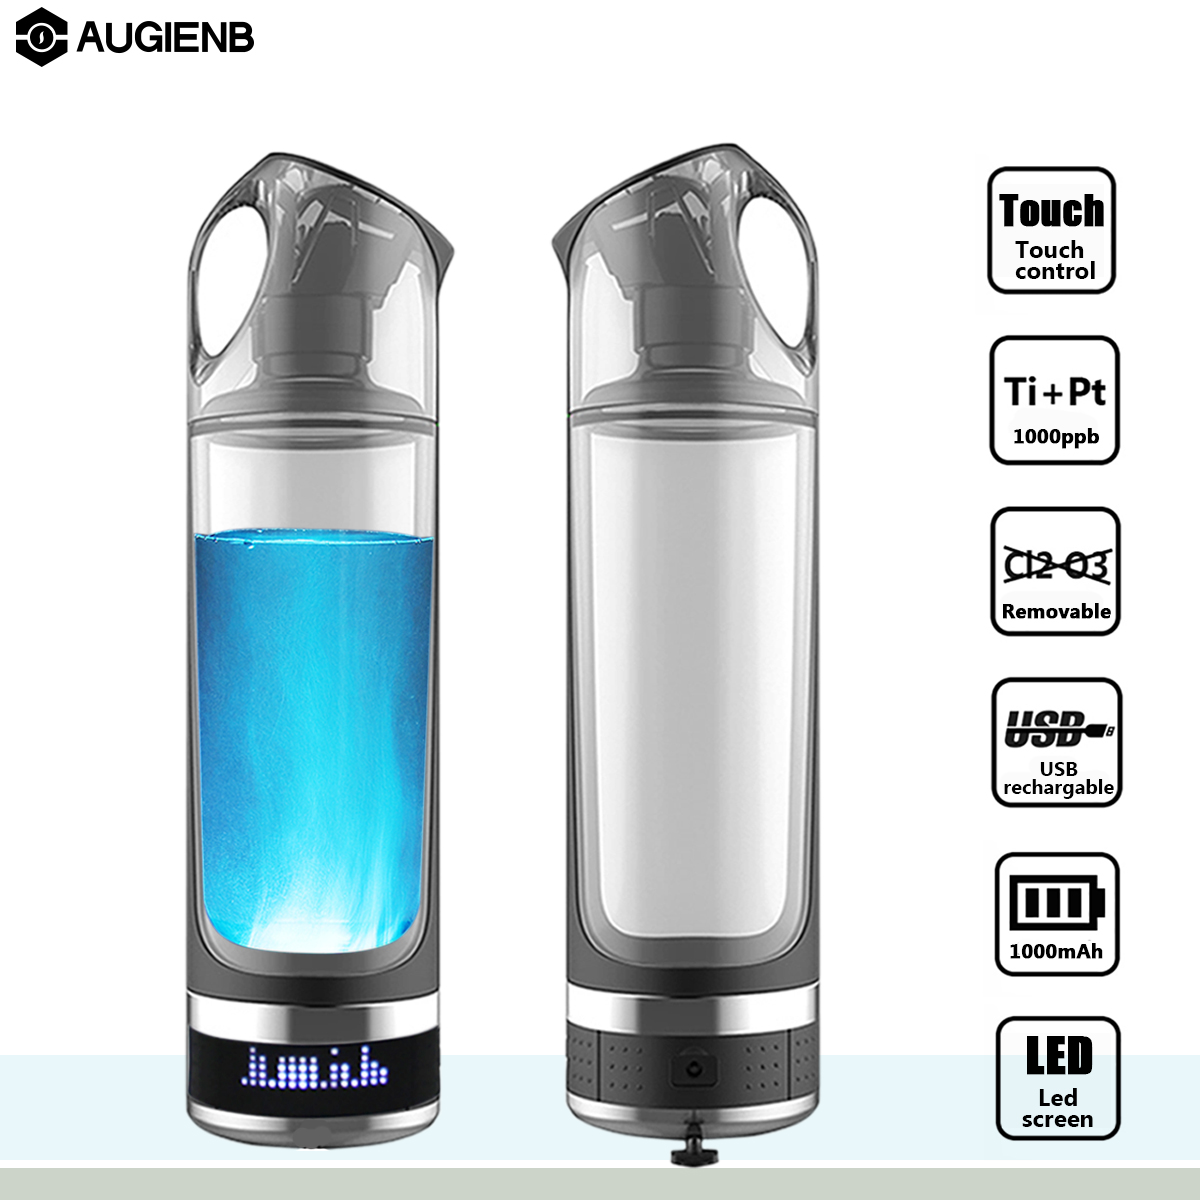 AUGIENB 500ml Hydrogen Rich Water Bottle lonizer Alkaline Generator LED Portable Healthy Cup USB Rechargeable Anti-Aging image